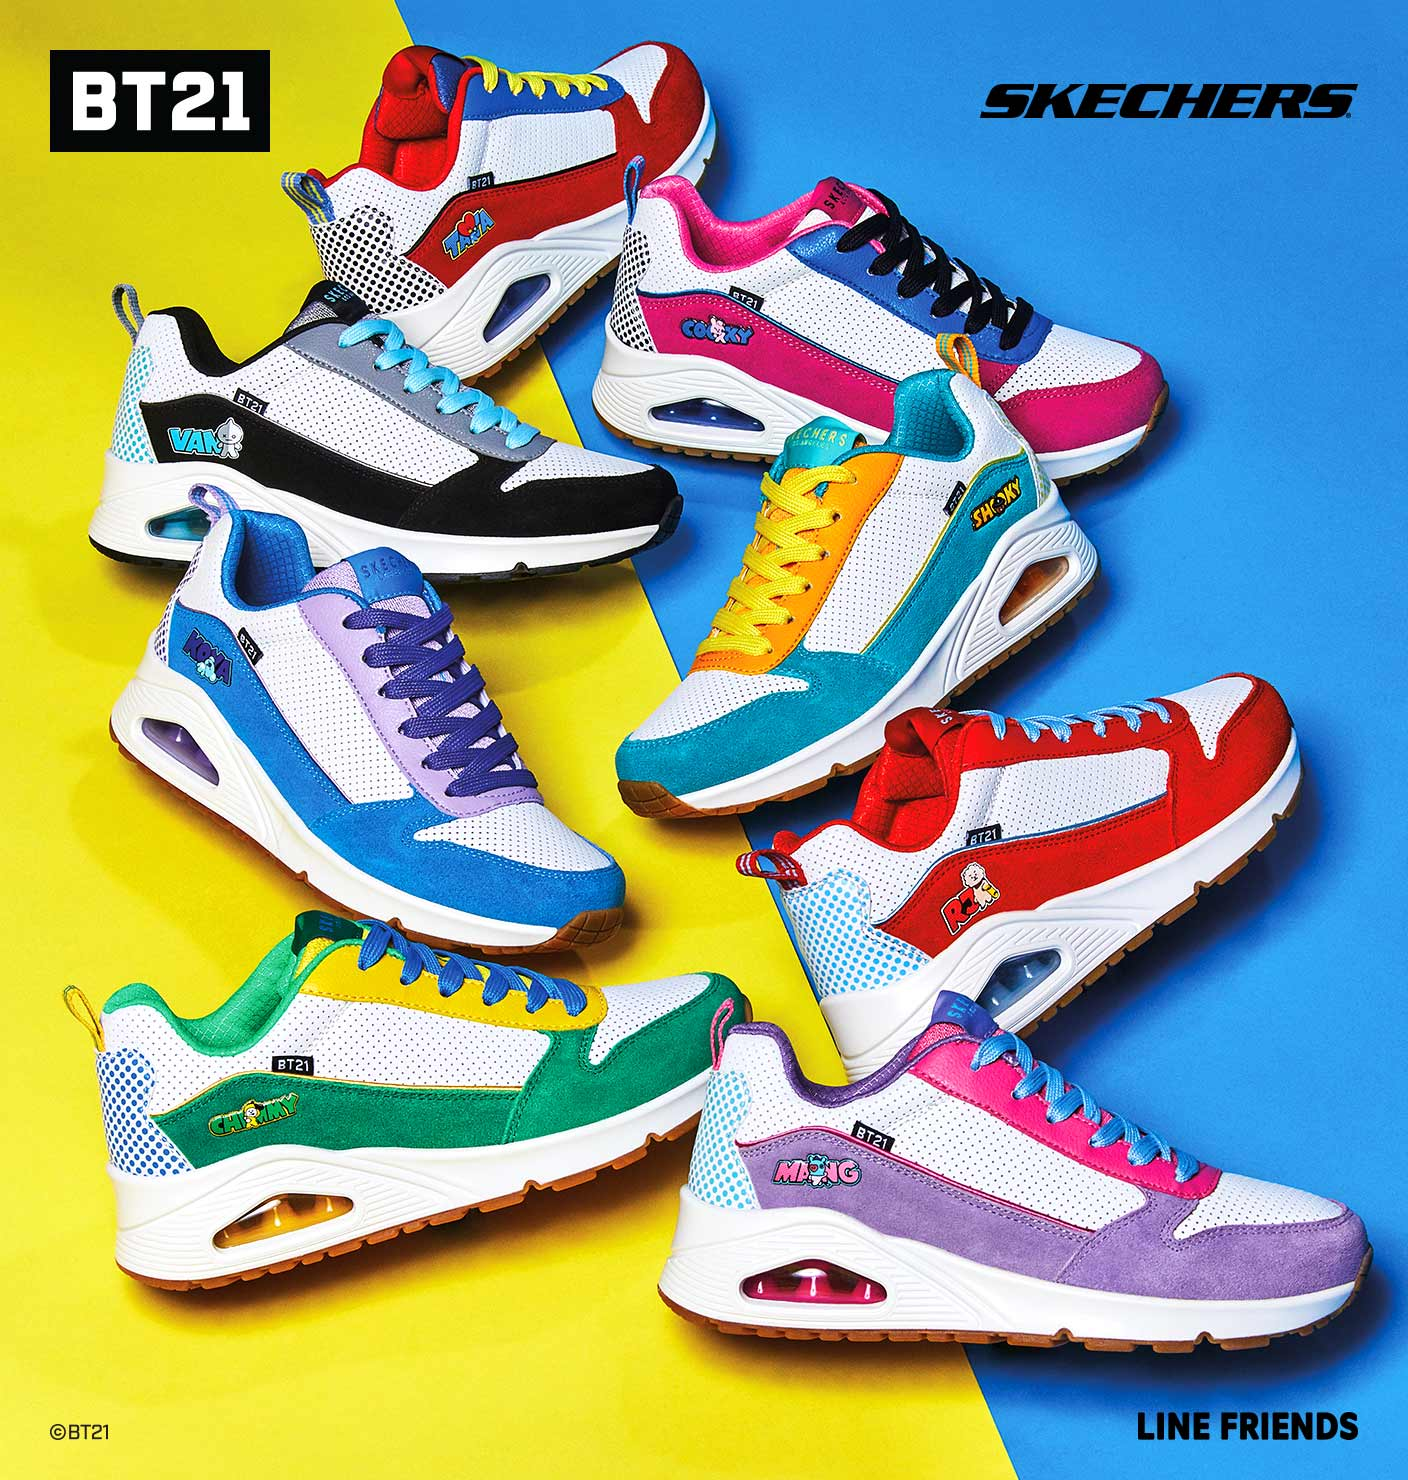 huge discount 74221 2ecbf Shop for SKECHERS Shoes, Sneakers, Sport, Performance ...